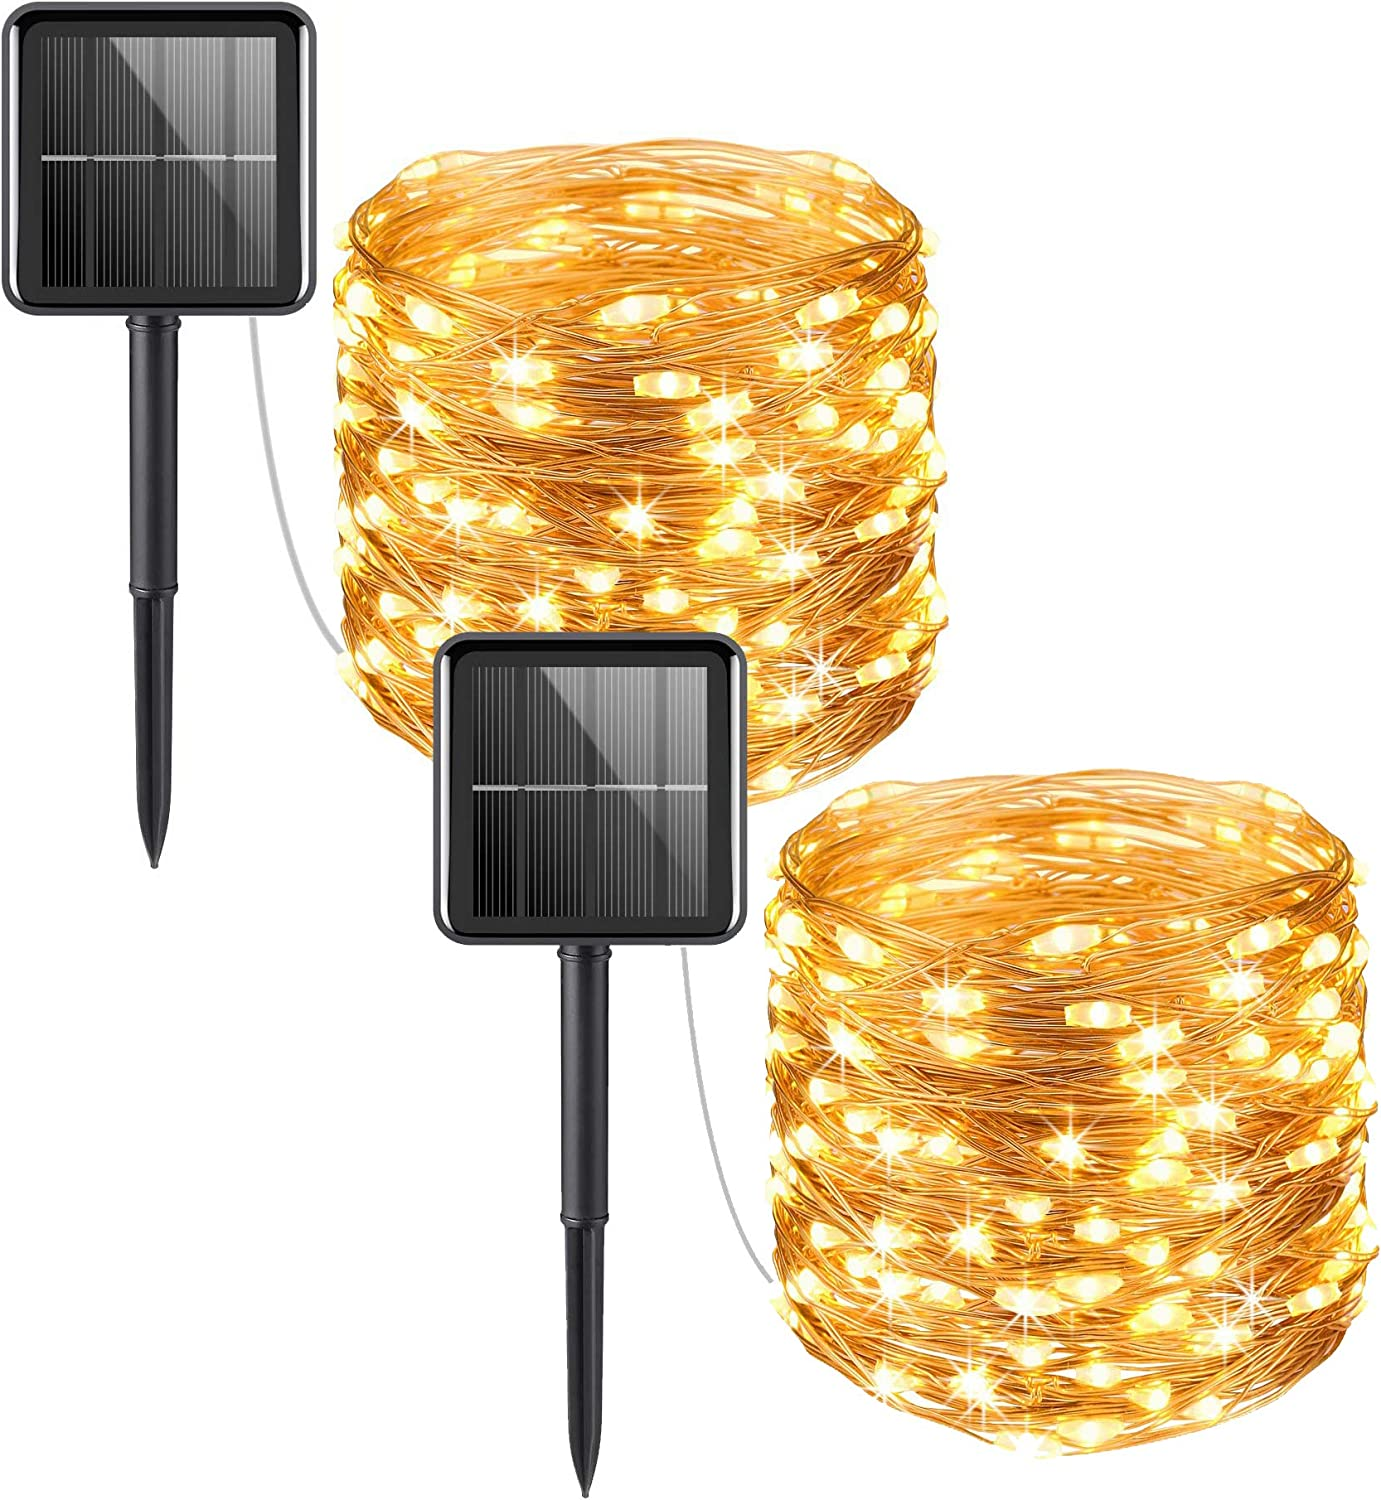 Windfirewheels 2 Pack Solar Powered Fairy Lights 100 LED 33FT 8 Modes Copper Wire Light Waterproof Outdoor Starry String Lights Amazing for Gardens Patio Gate Yard Lawn Party (2 Pack WW)